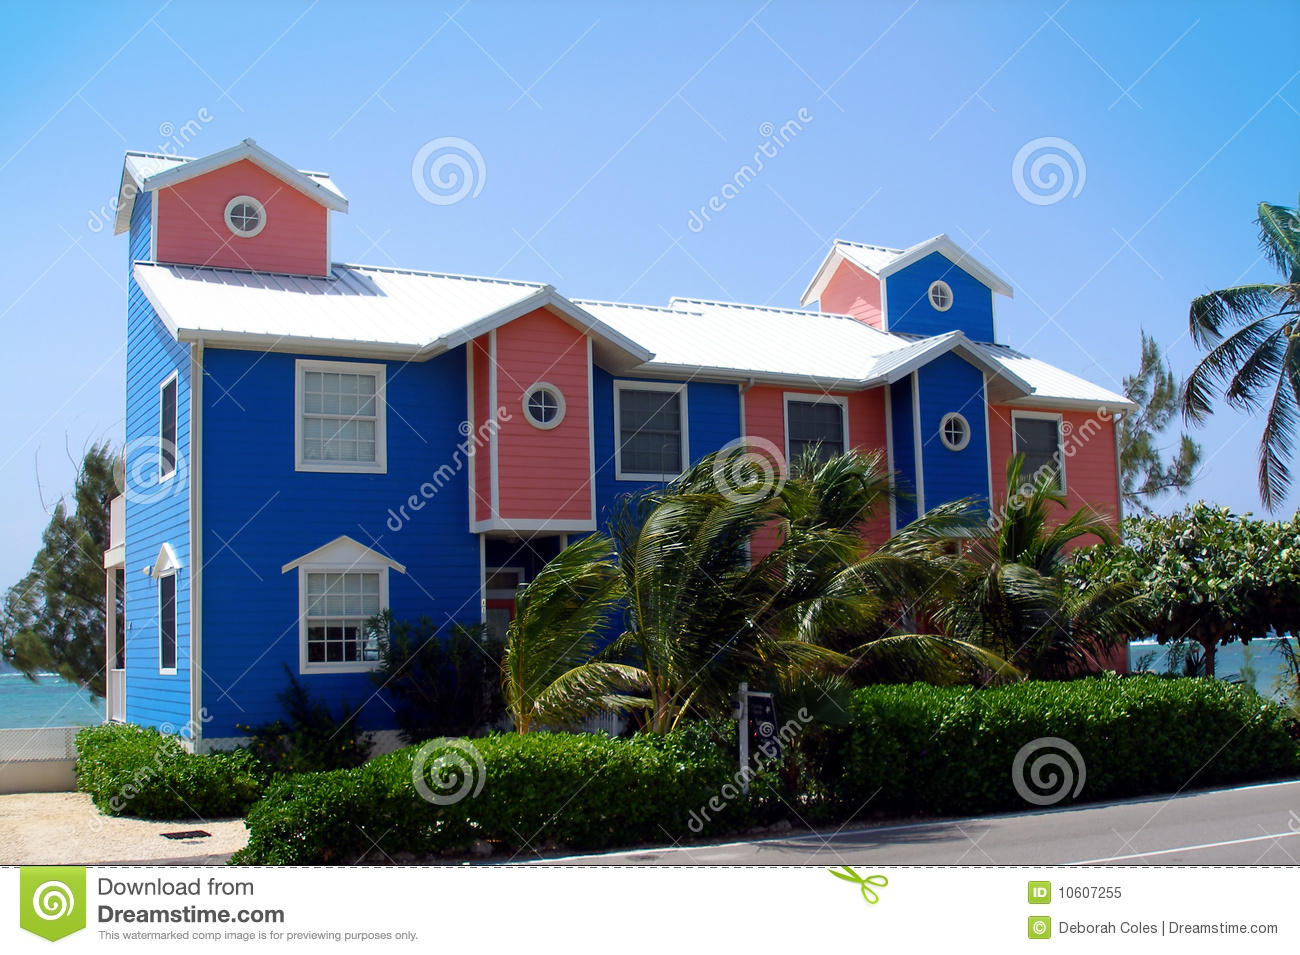 Beautiful And Colourful Beachfront Homes On The Caribbean Island Of